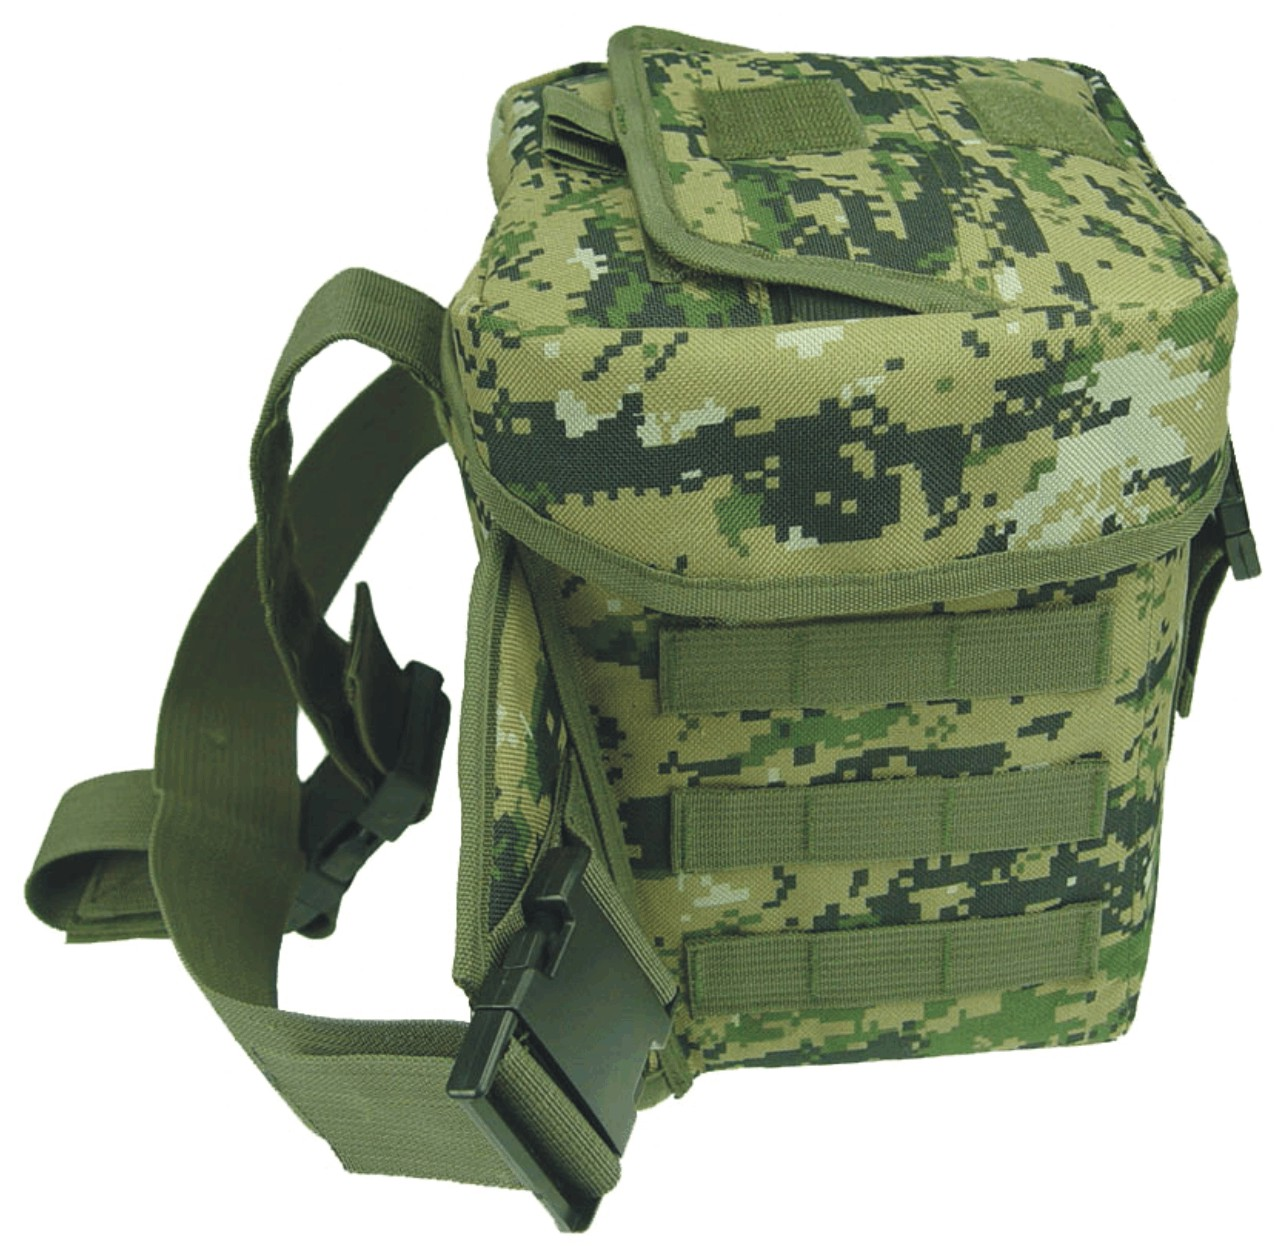 TG213 MOLLE Attachable Drop Leg Dump Pouches